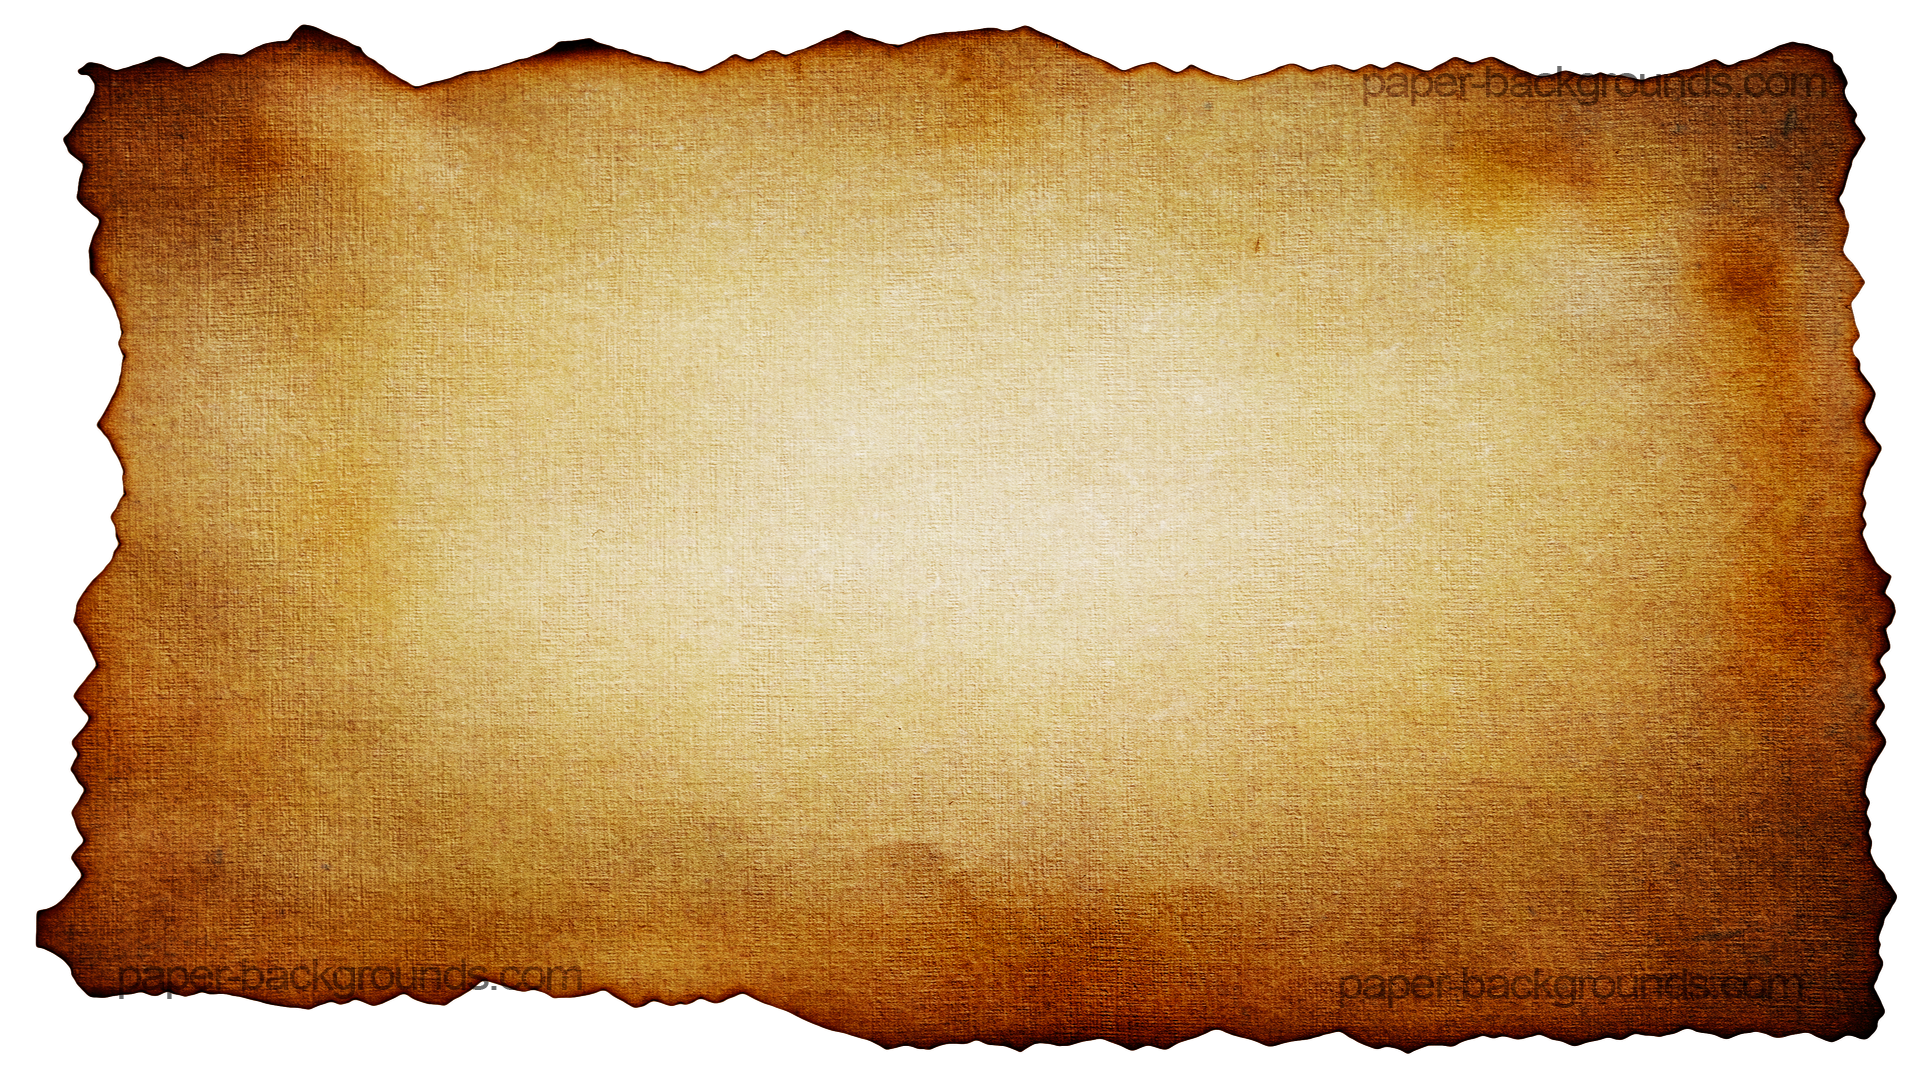 Paper Backgrounds | Transparent Backgrounds | Royalty Free ...